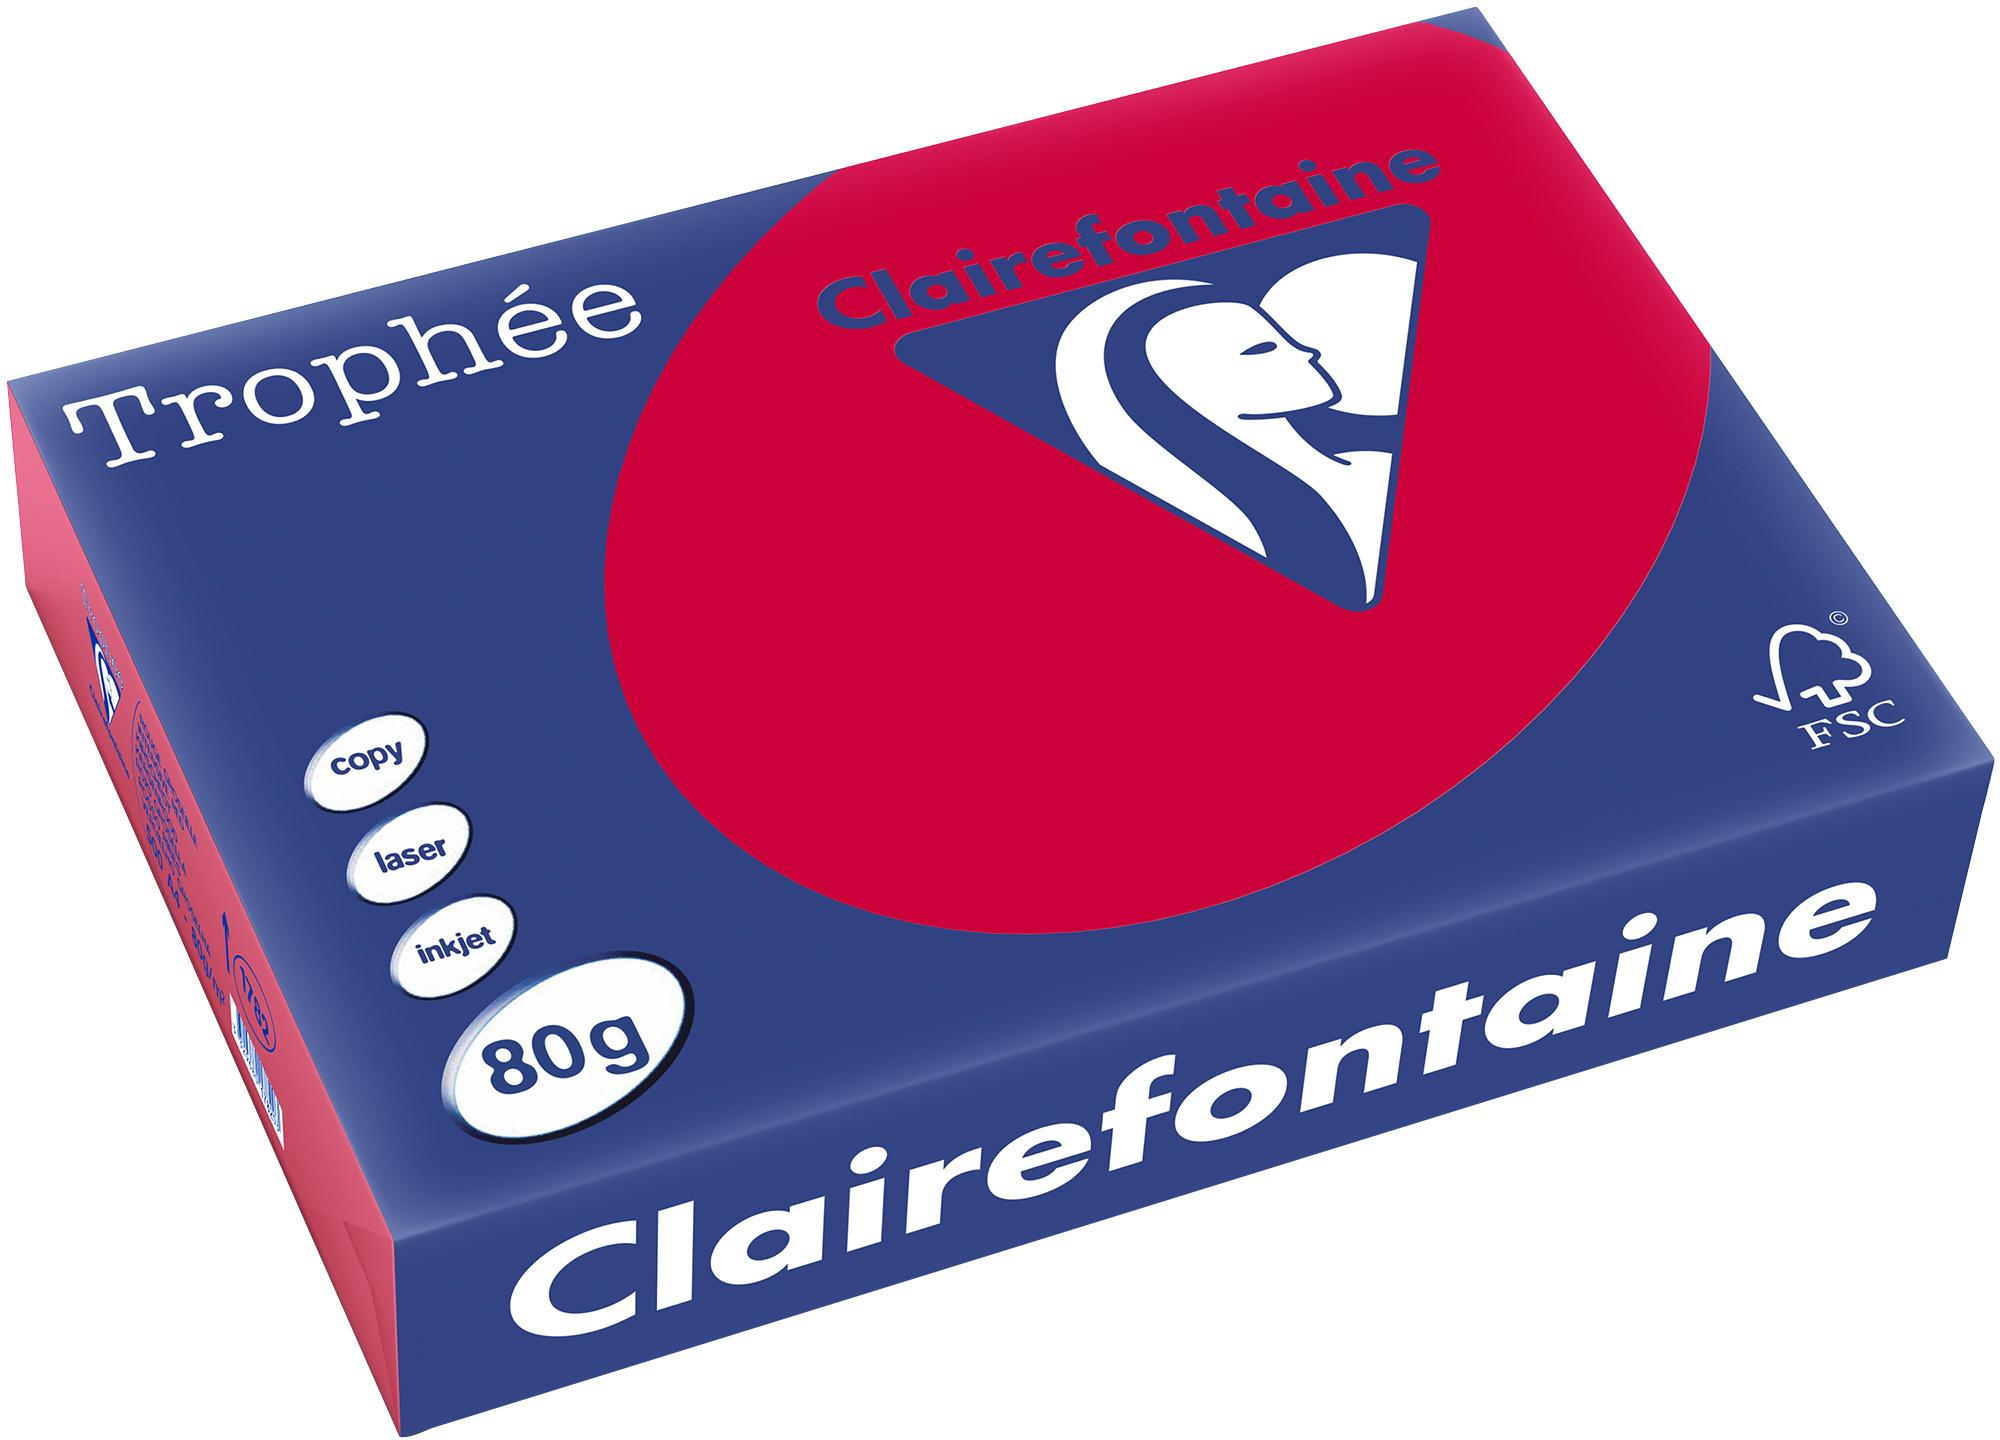 Clairefontaine A4 papier gekleurd Kersenrood